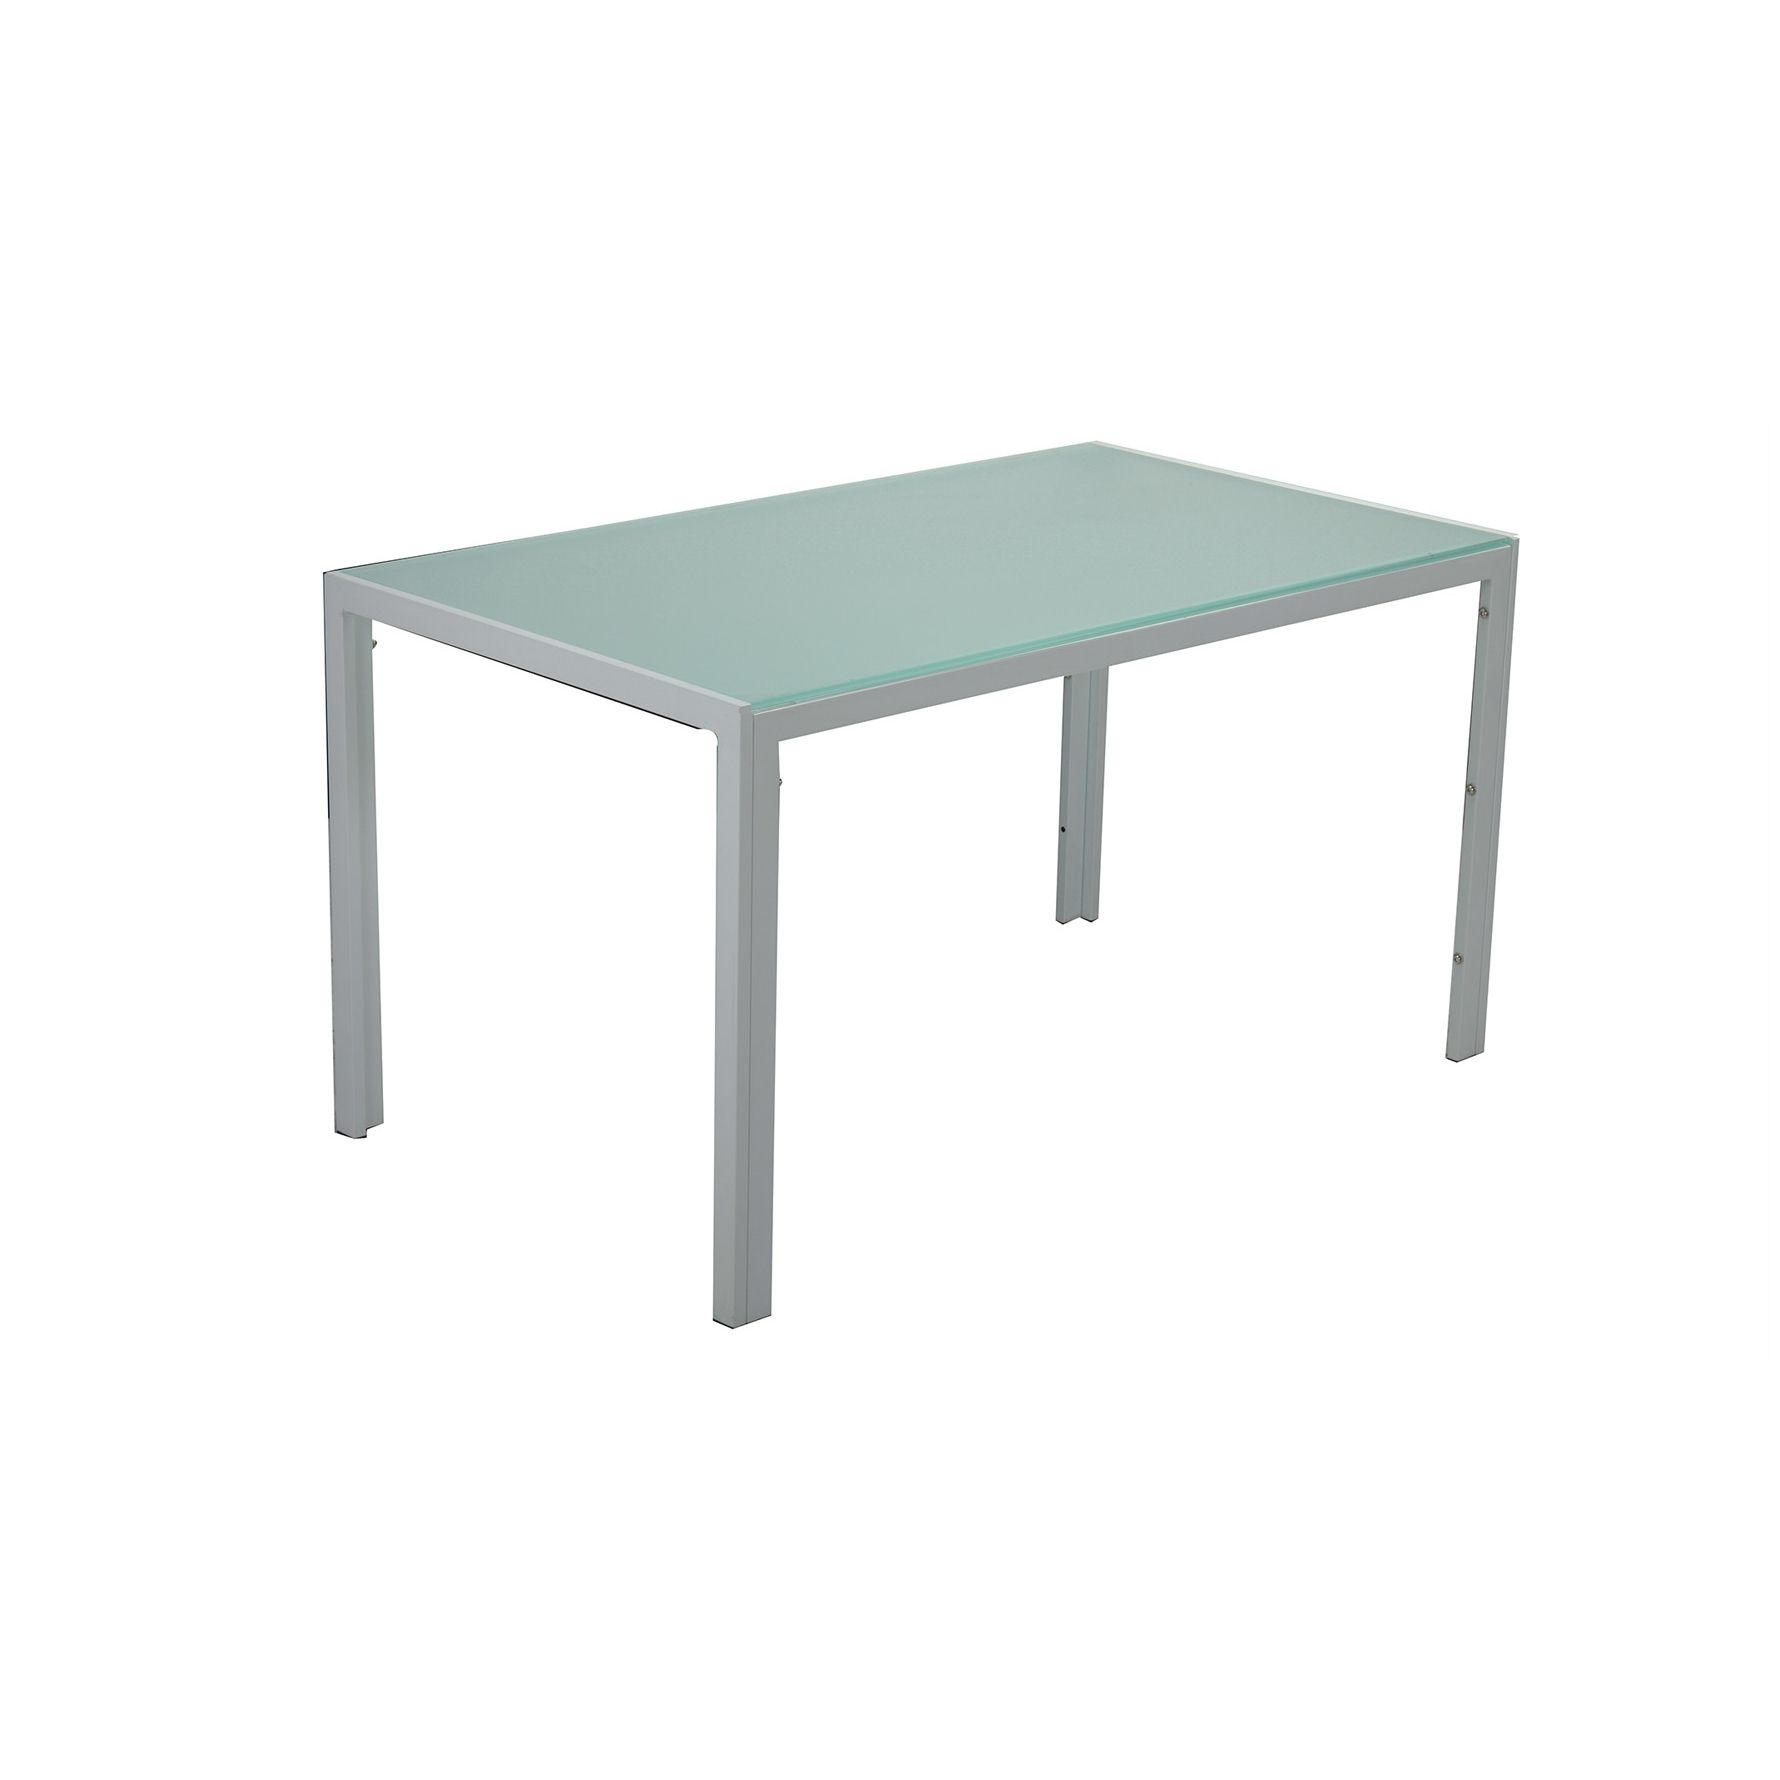 Table a manger verre blanc conceptions de maison for Table a manger en verre ikea